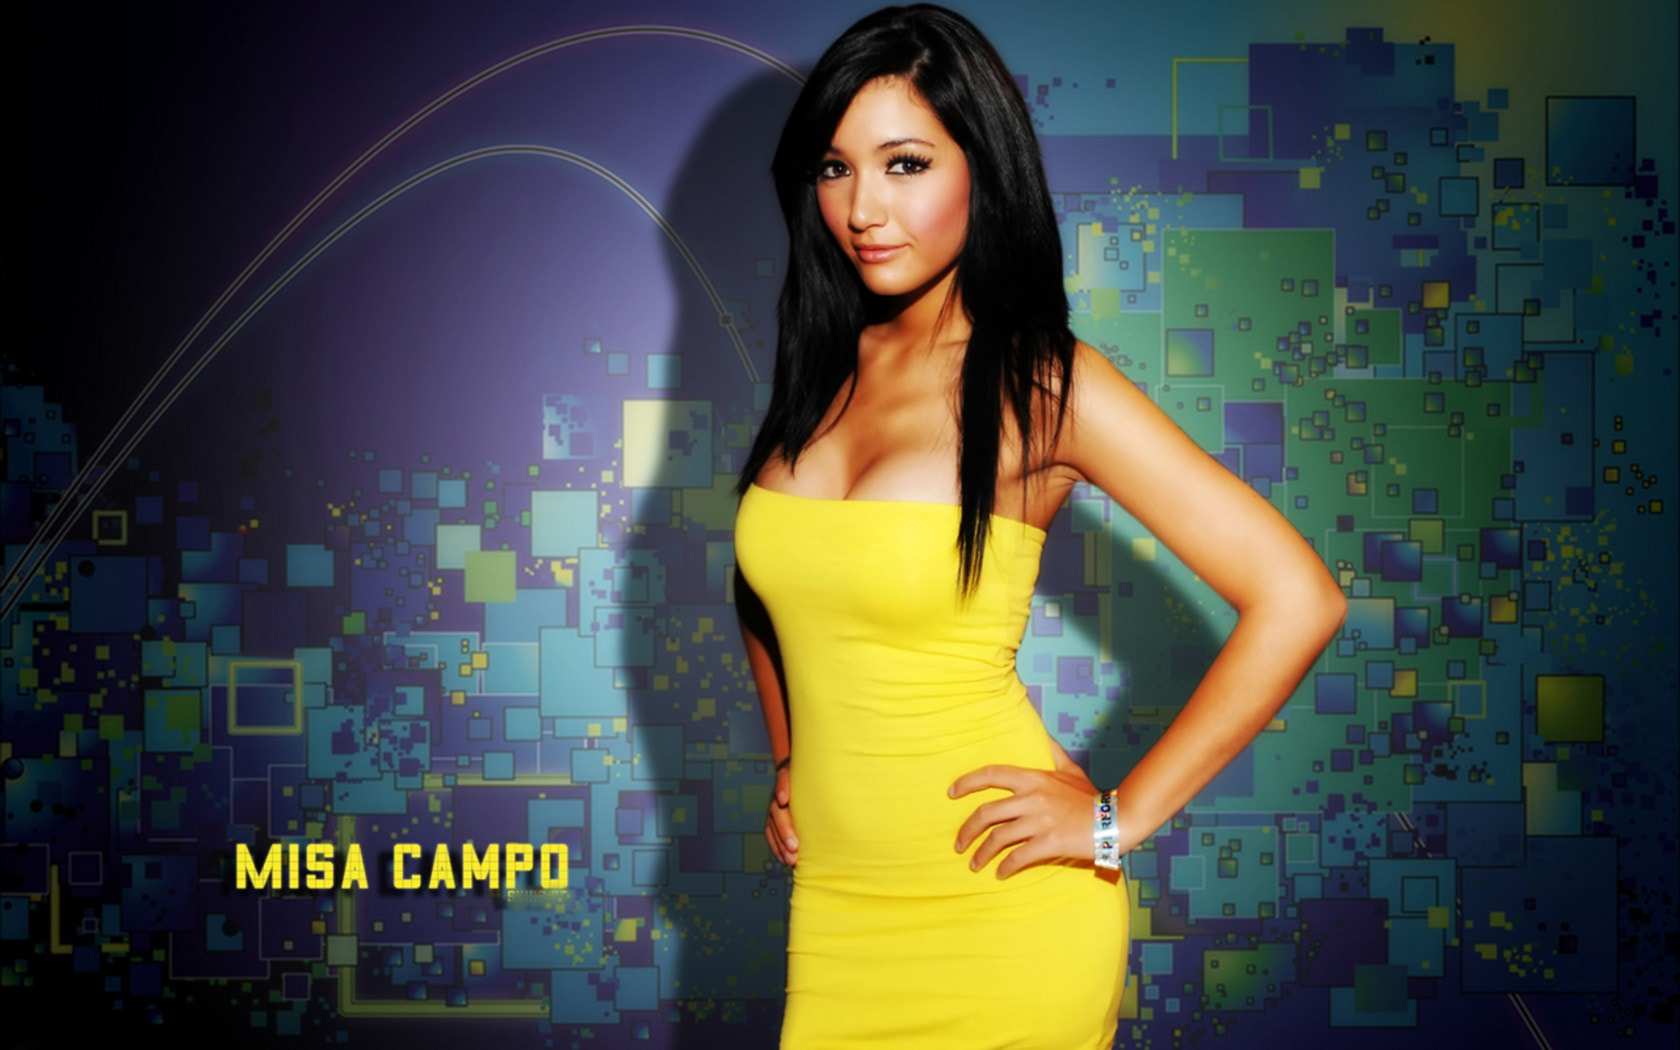 Misa Campo Desktop wallpapers